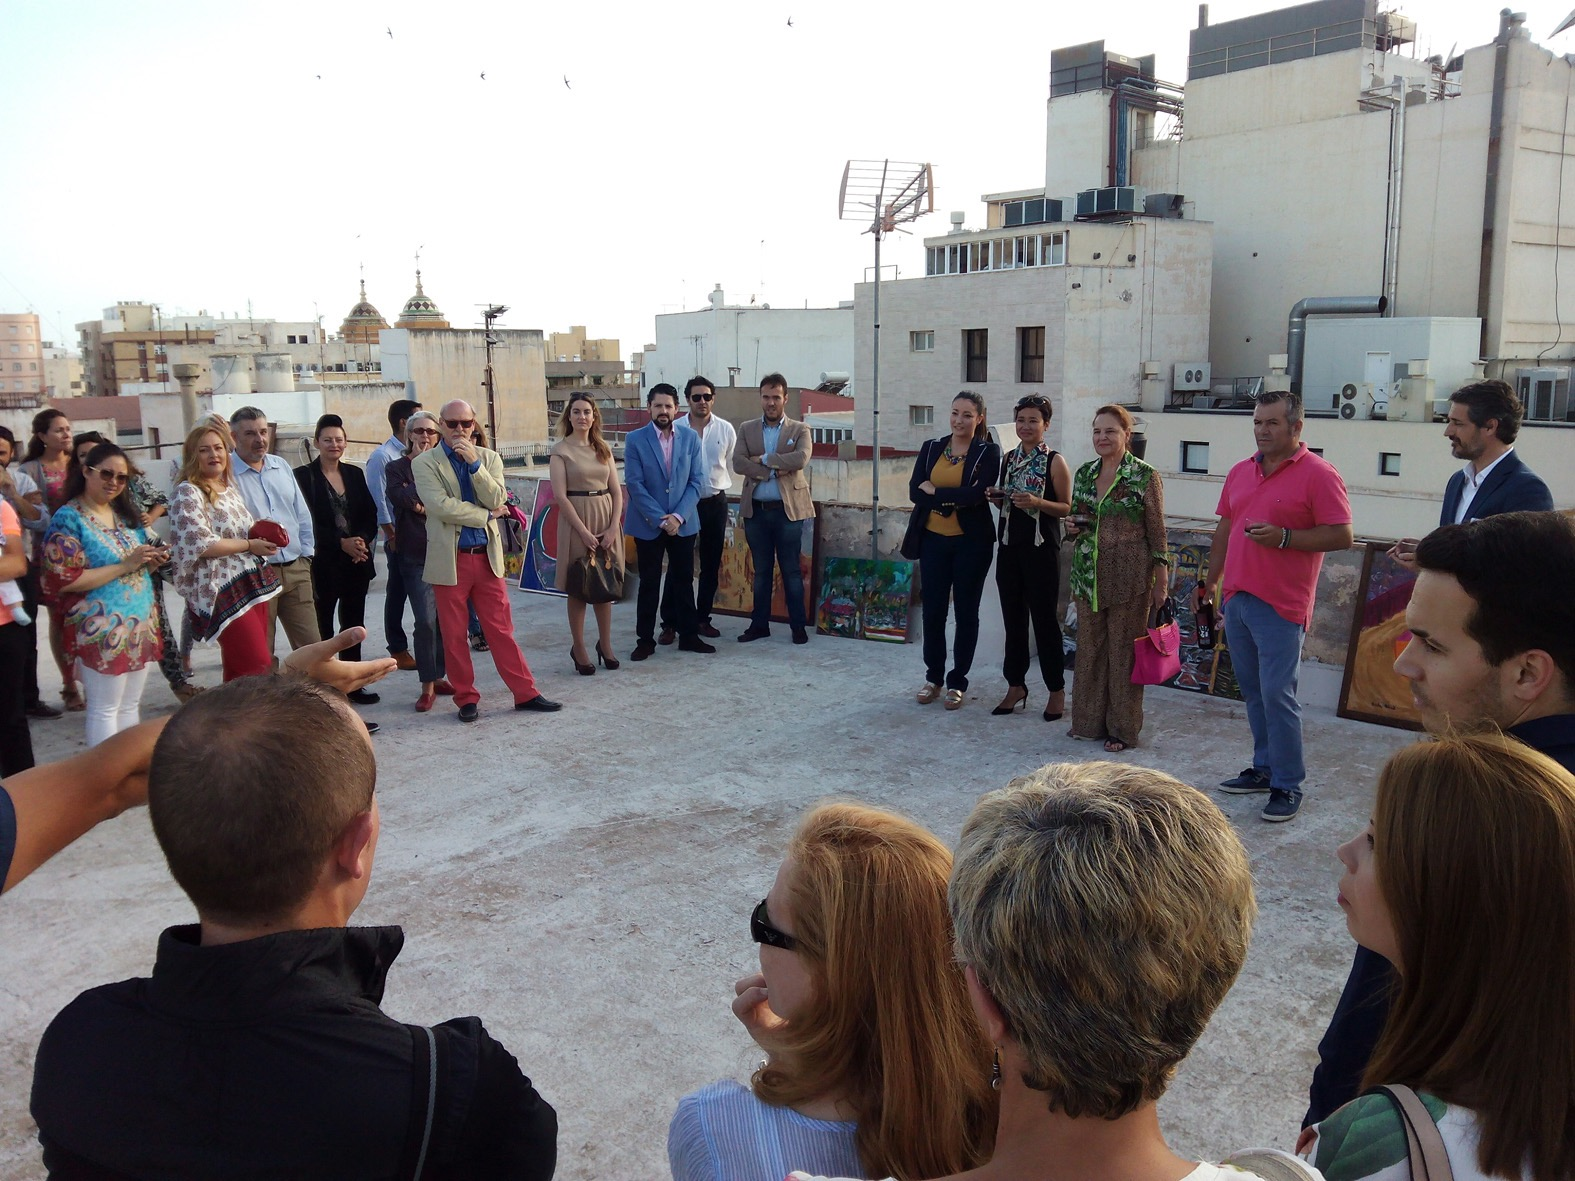 Welcome drinks and art show at rooftop home of local artist, Adela Abad